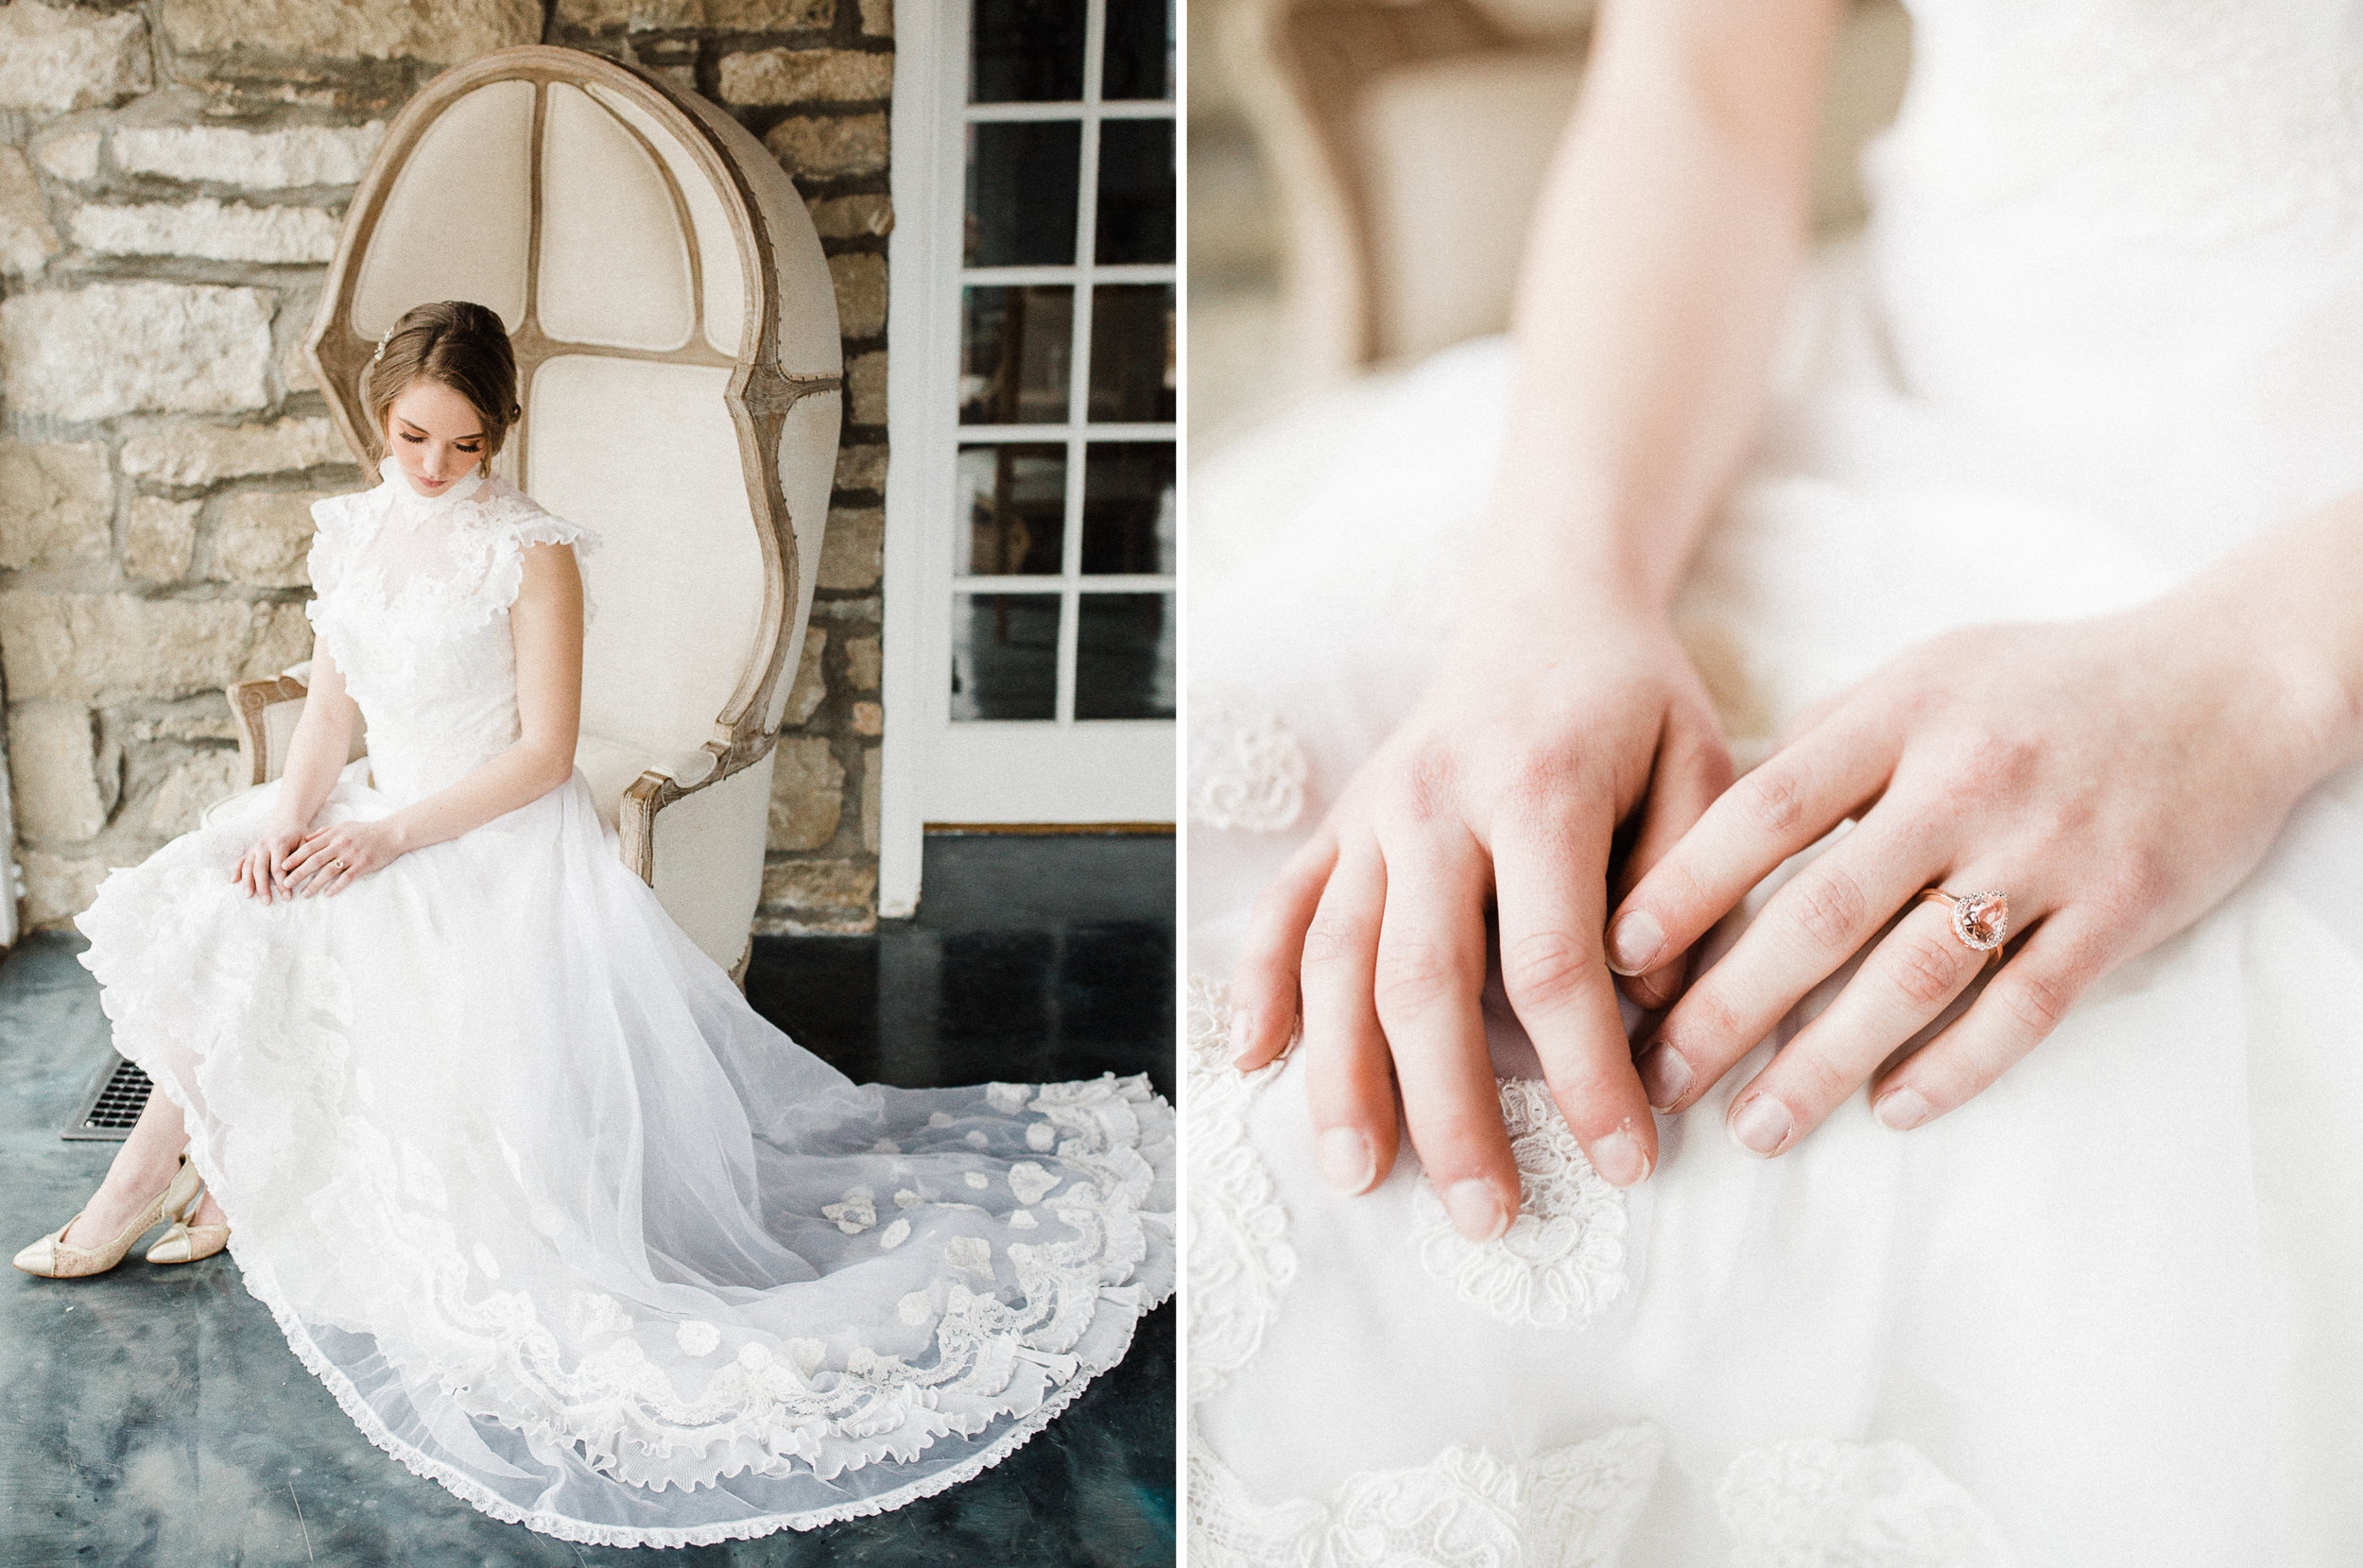 dorothy_louise_photography_old_stone_house_st._charles_bridal_inspiration3.jpg